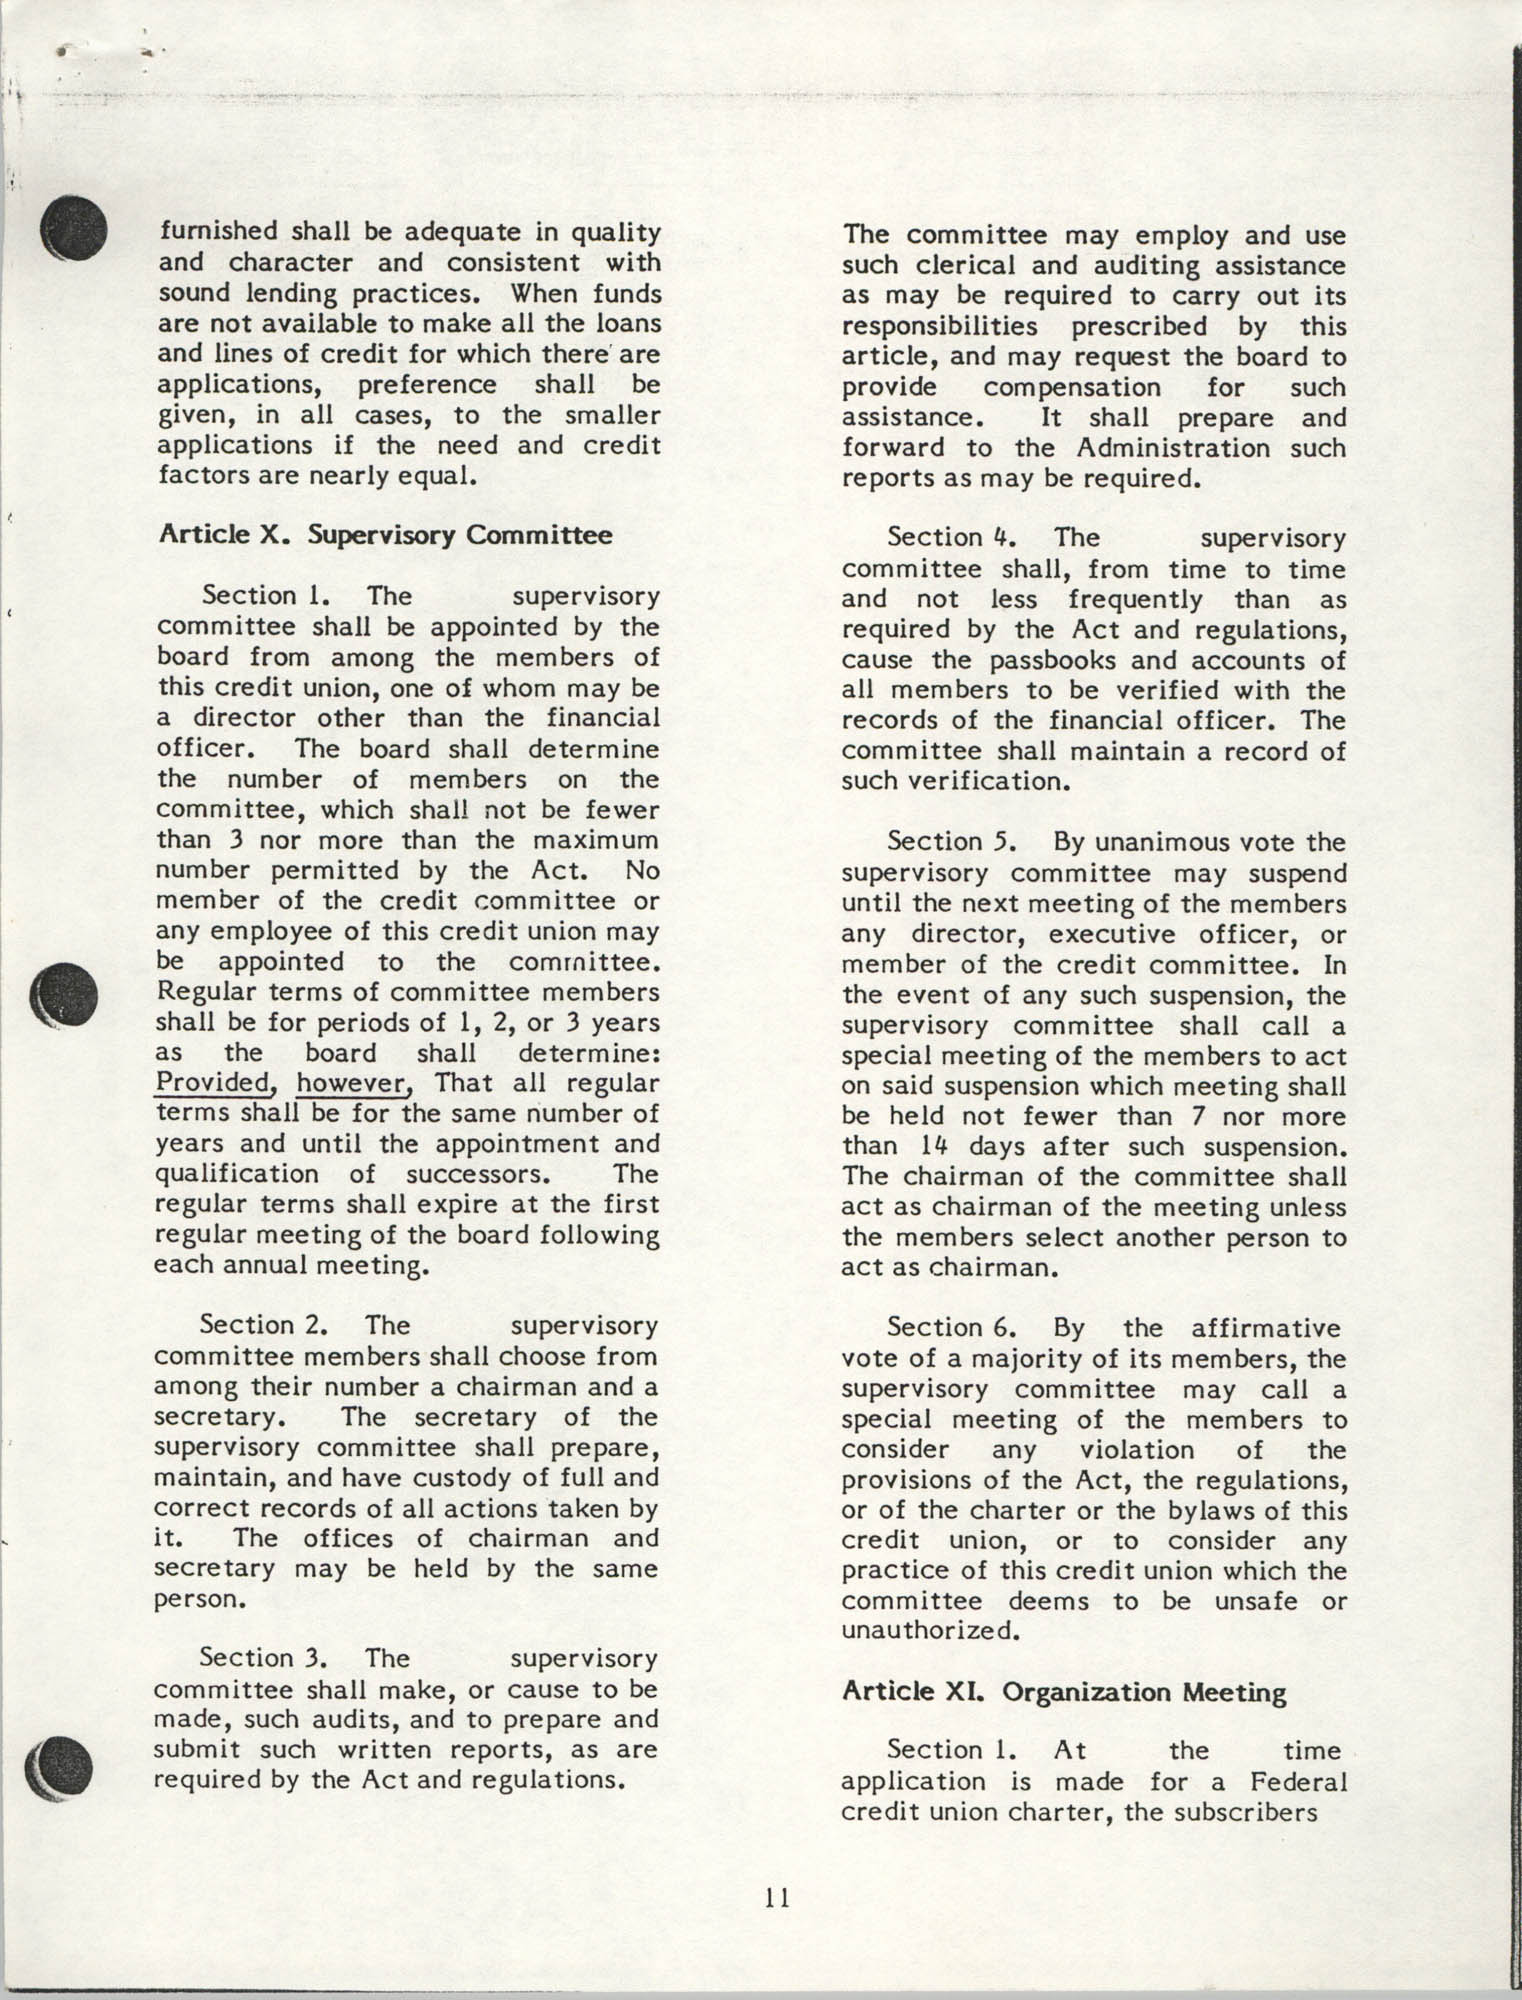 National Credit Union Administration, Federal Credit Union Bylaws, May 1986, Page 11